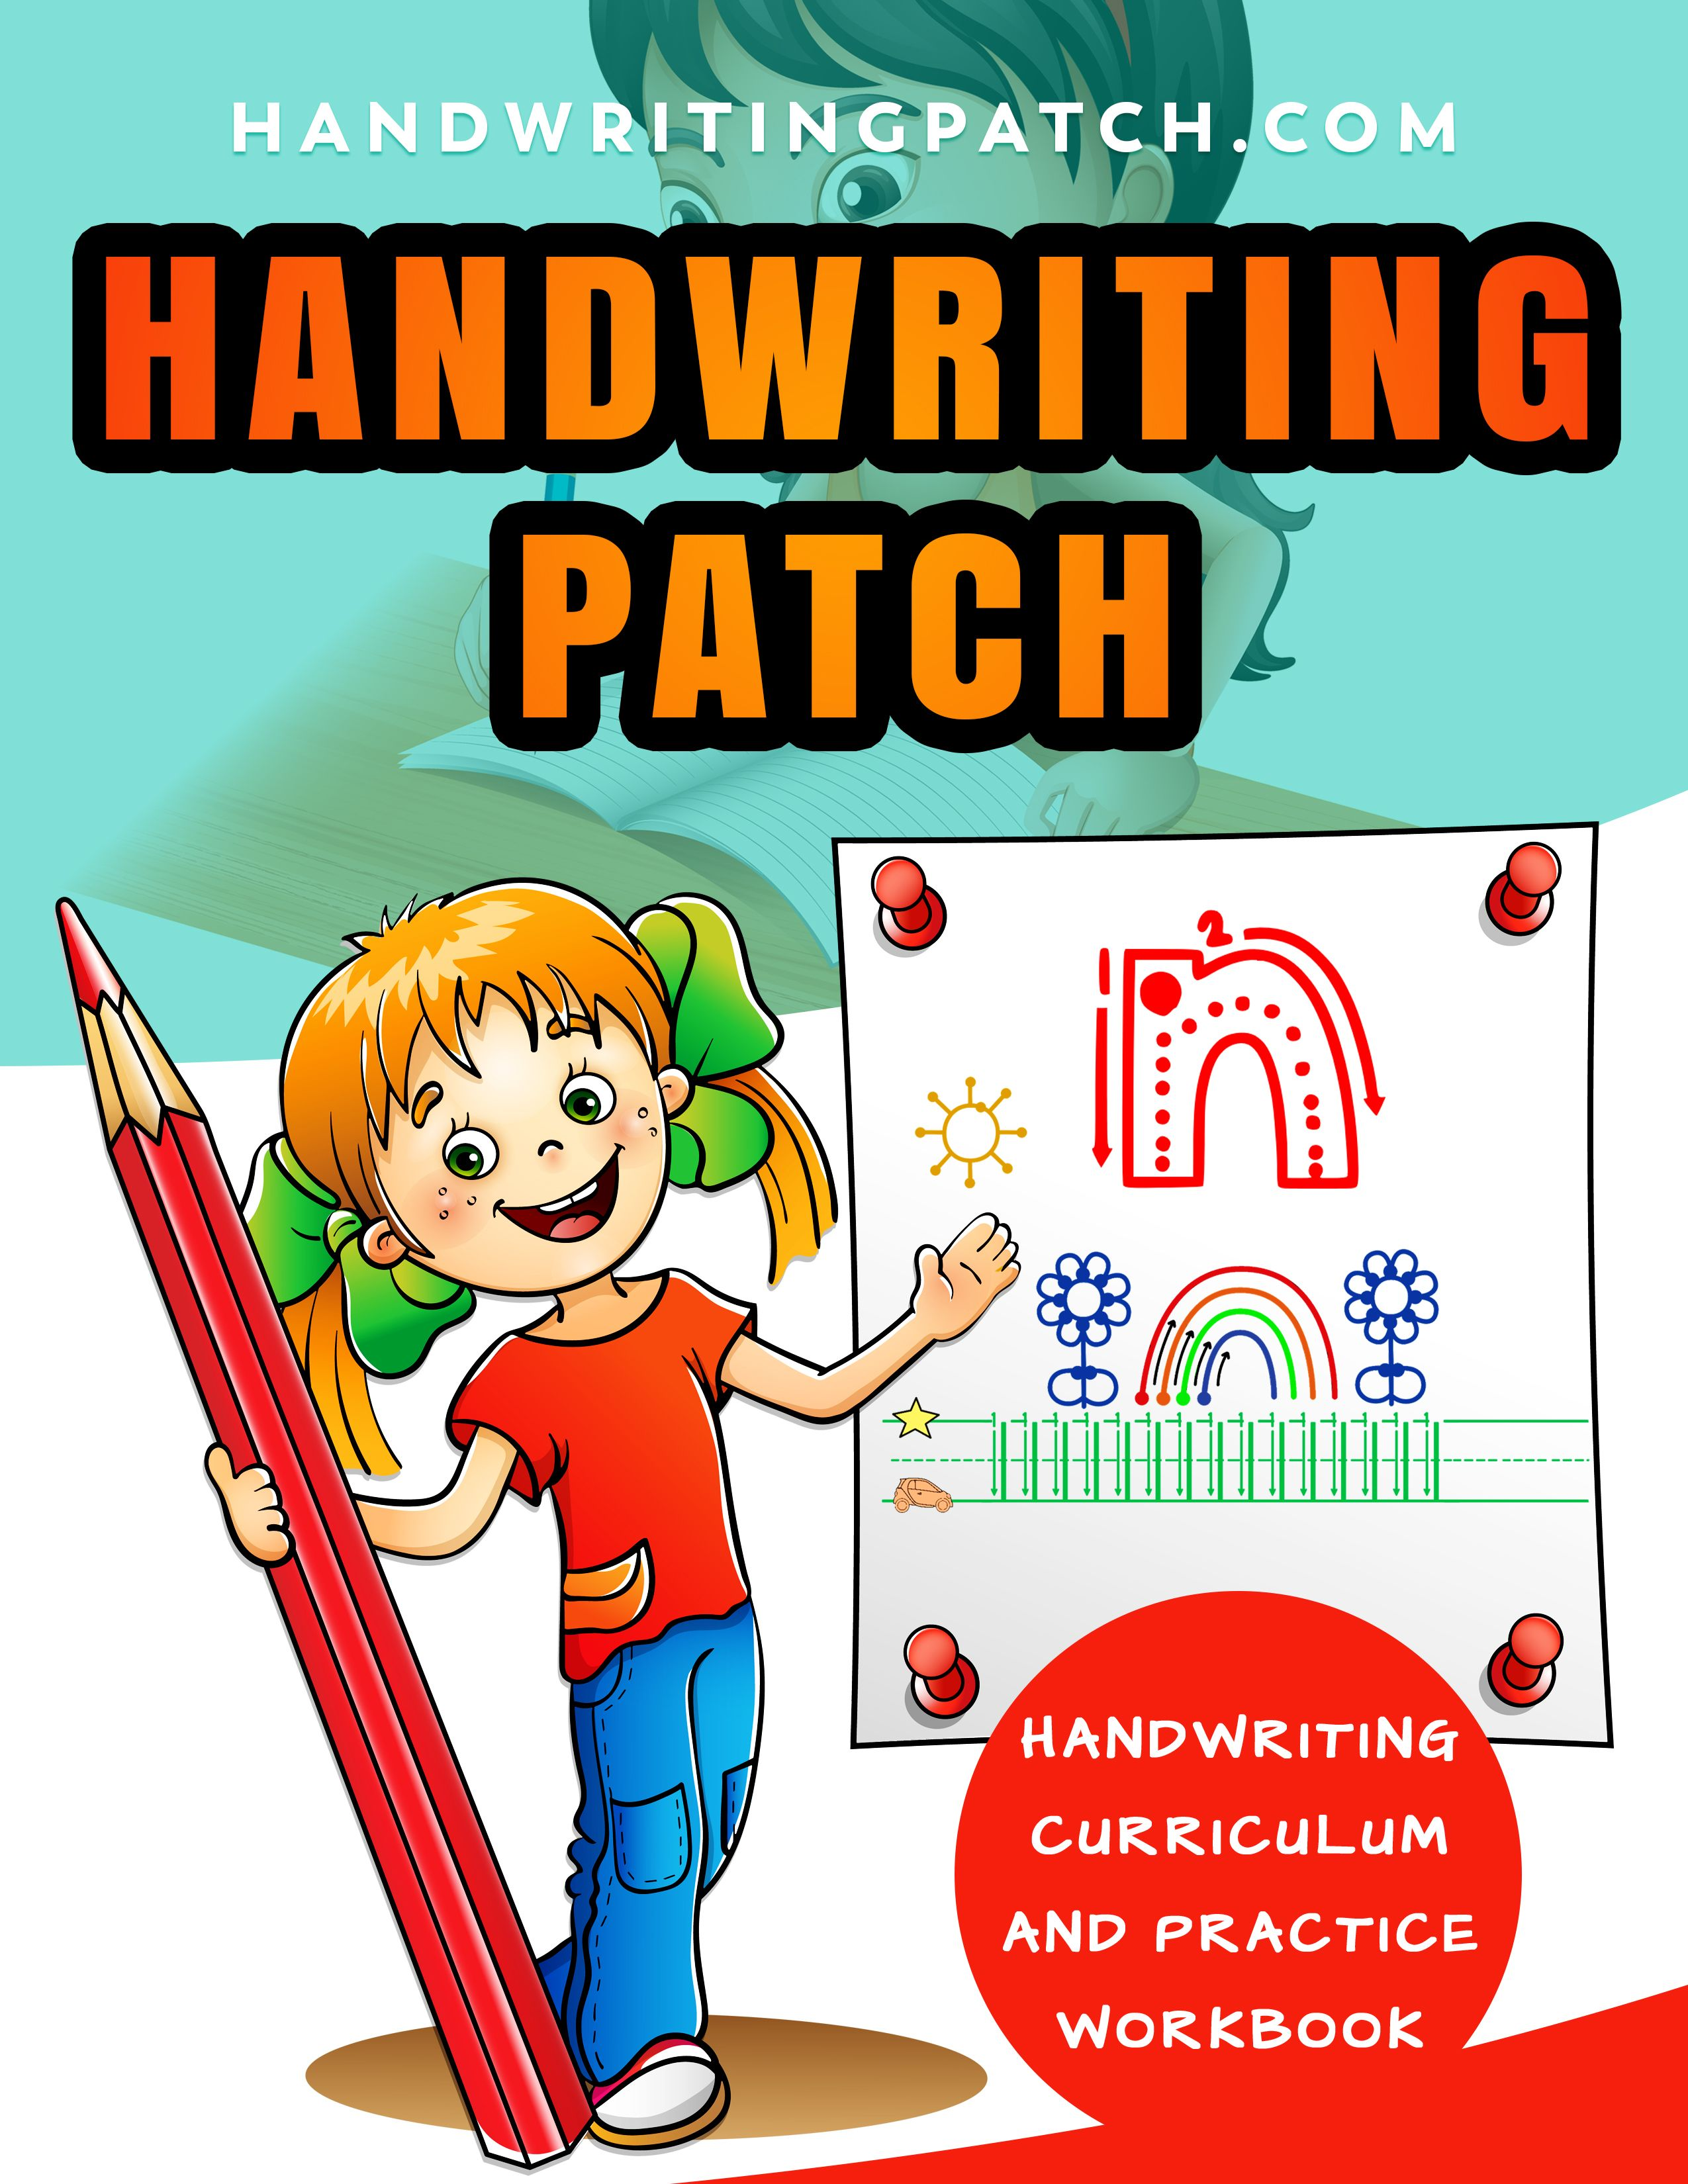 Teach Children To Draw While Teaching Handwriting At The